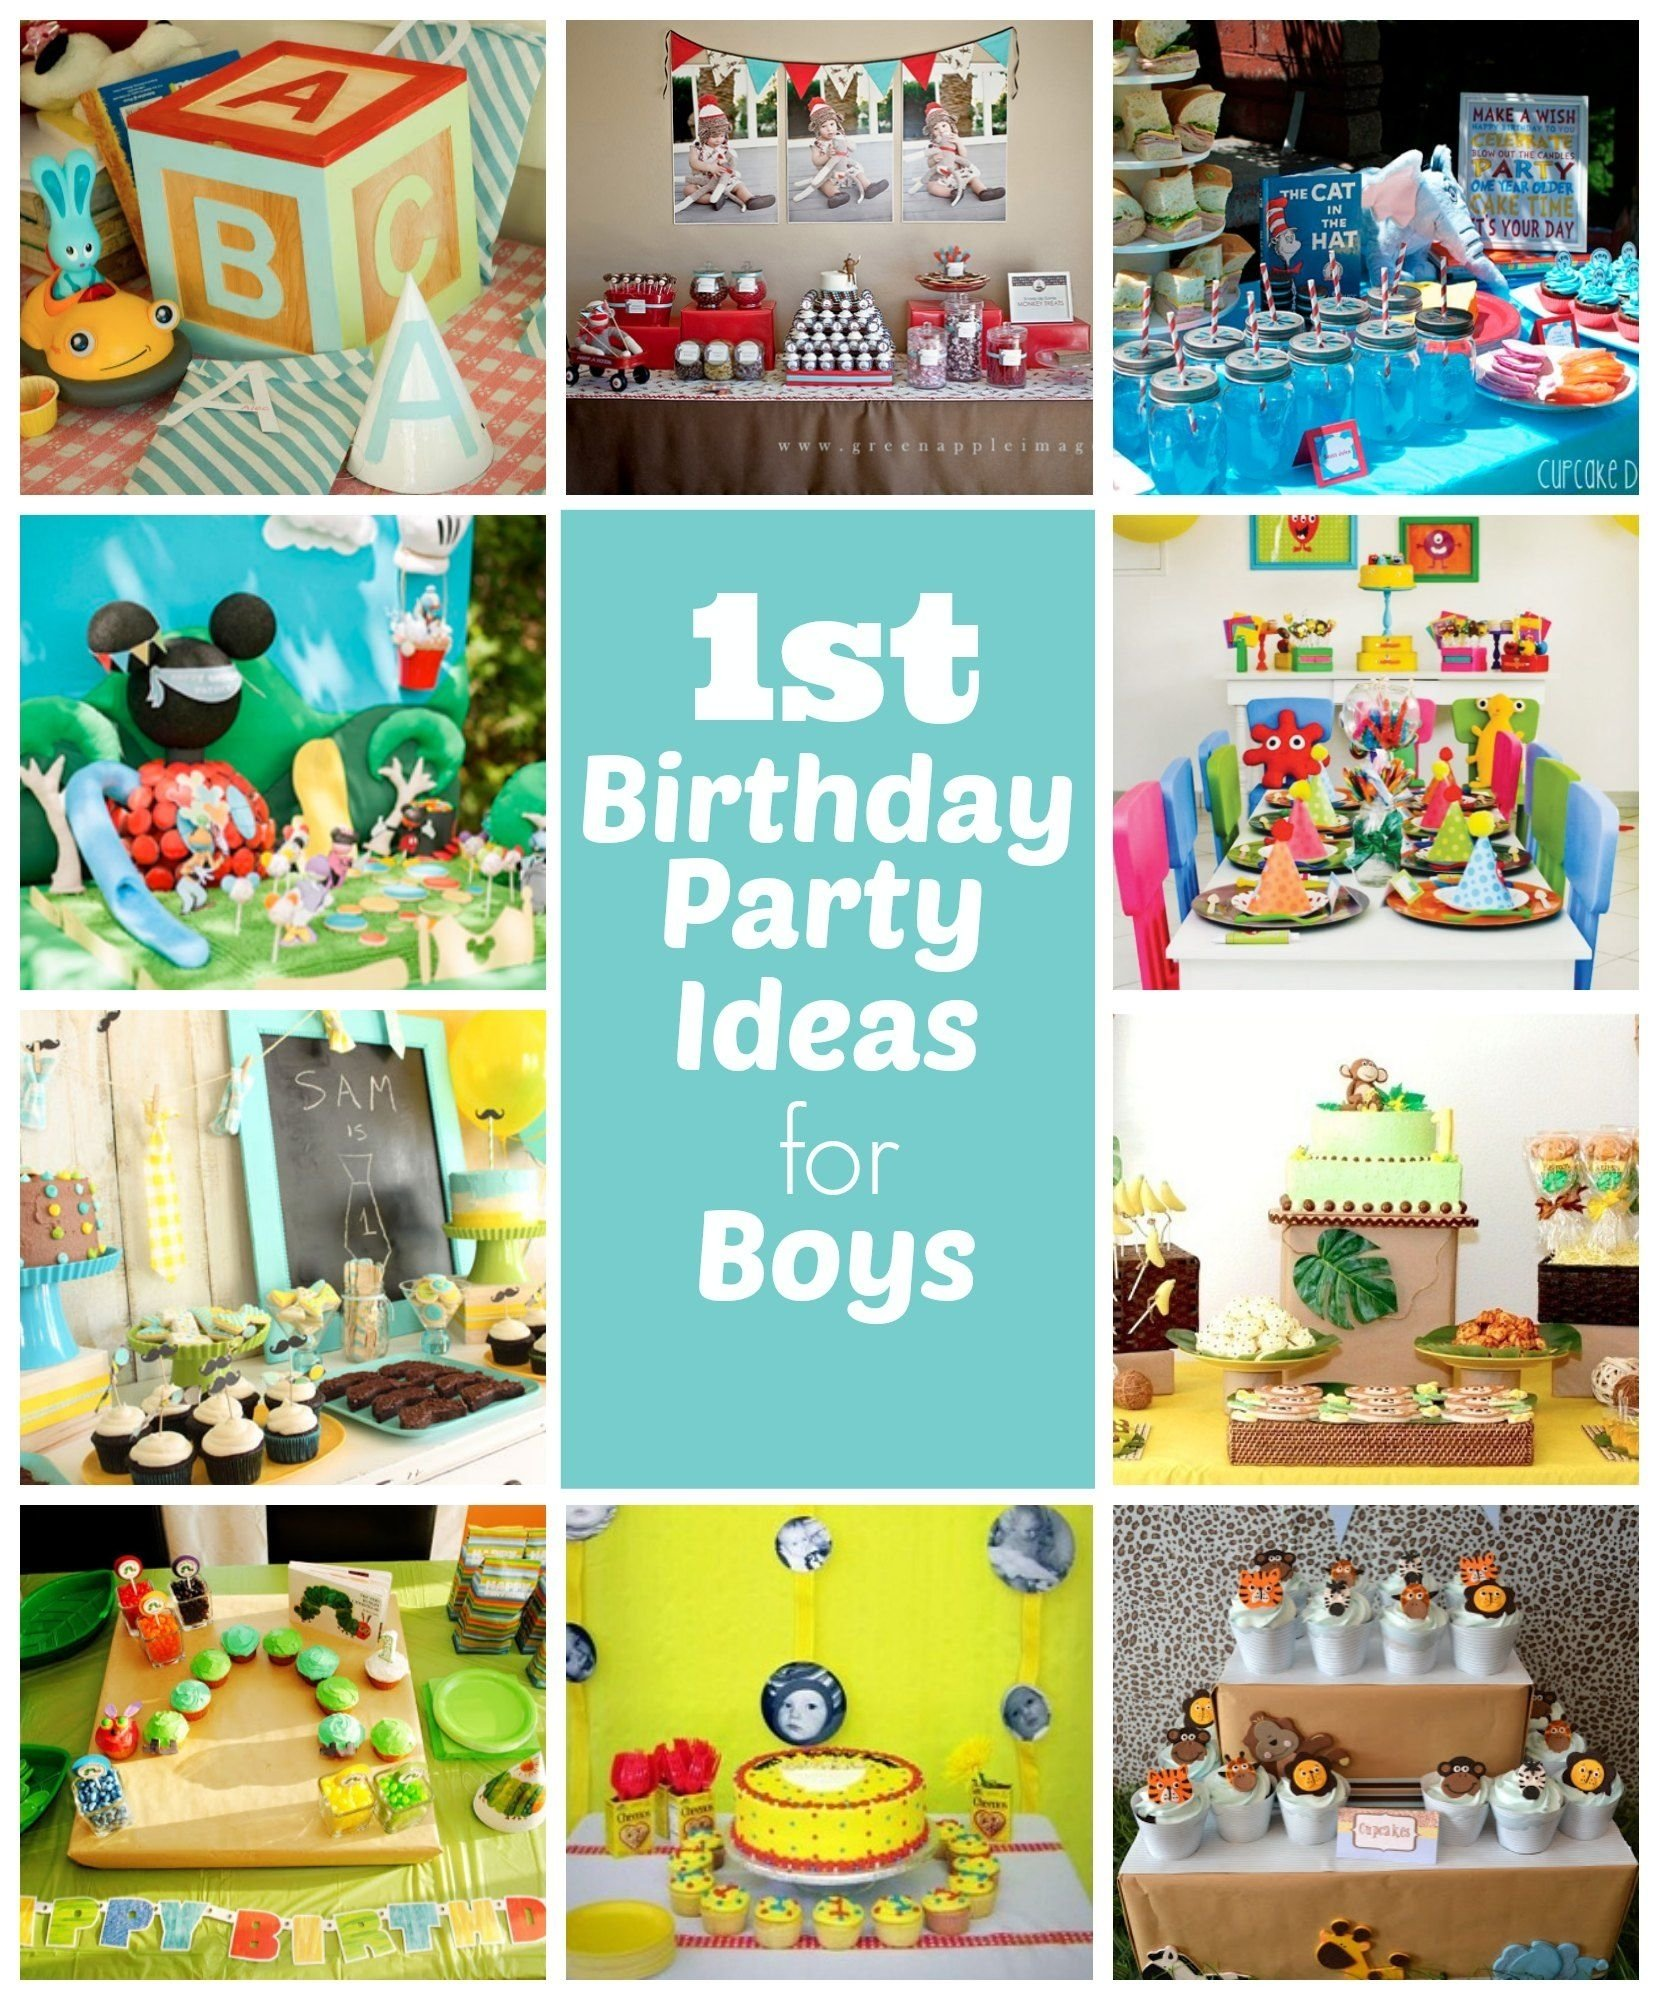 1st birthday party ideas for boys - great ideas including very